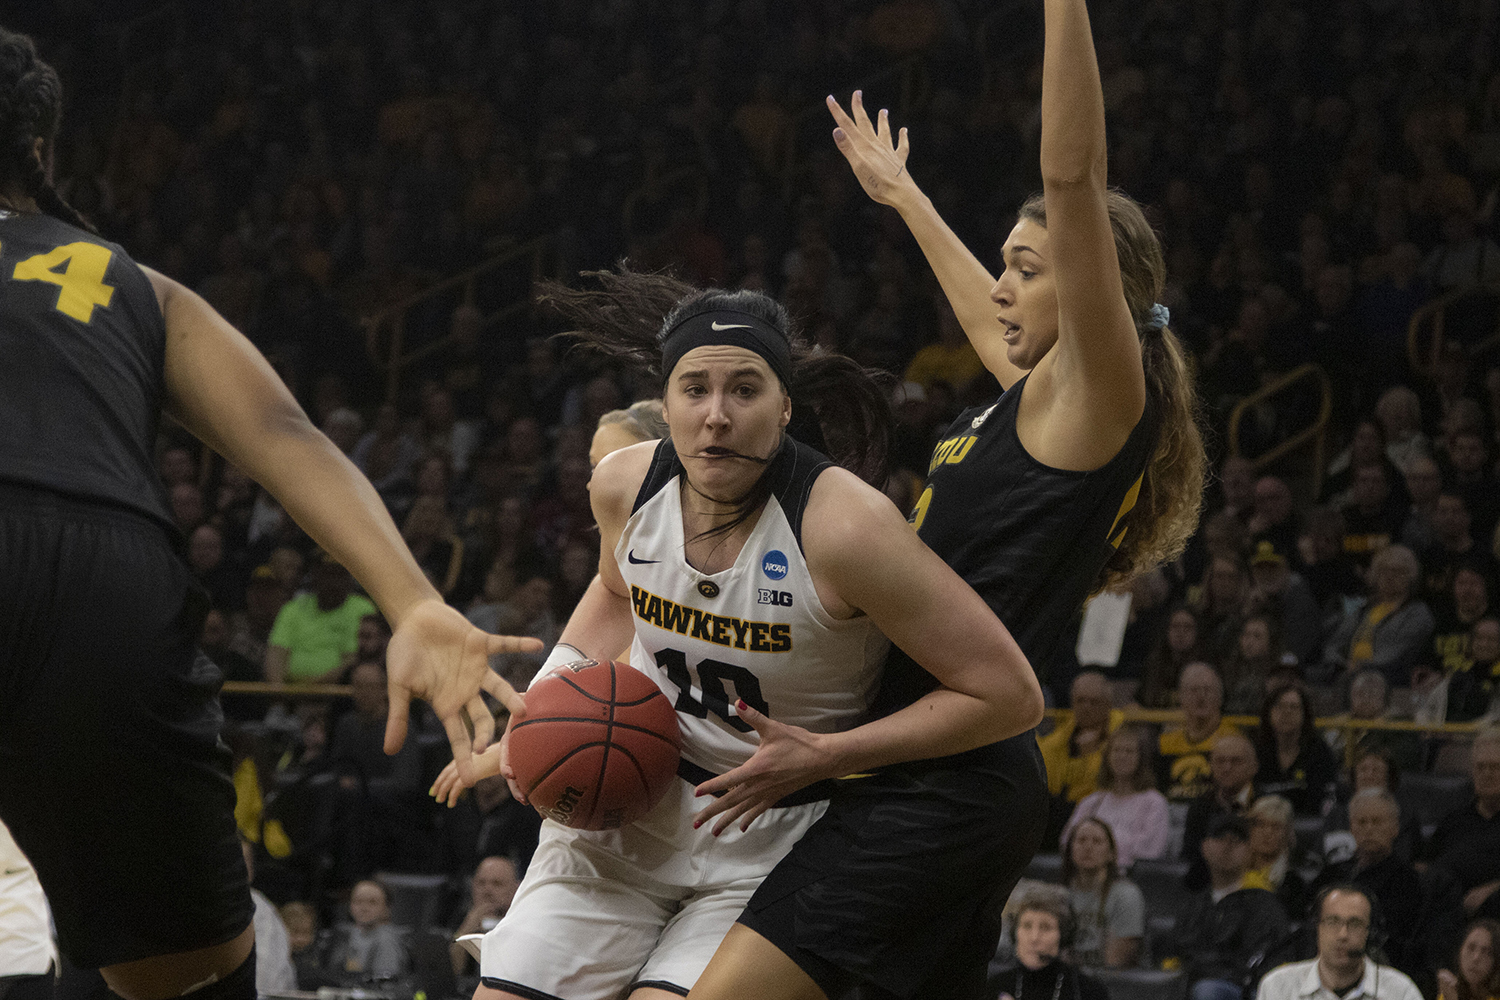 Gustafson Goes to Dallas Wings in Second Round of WNBA Draft